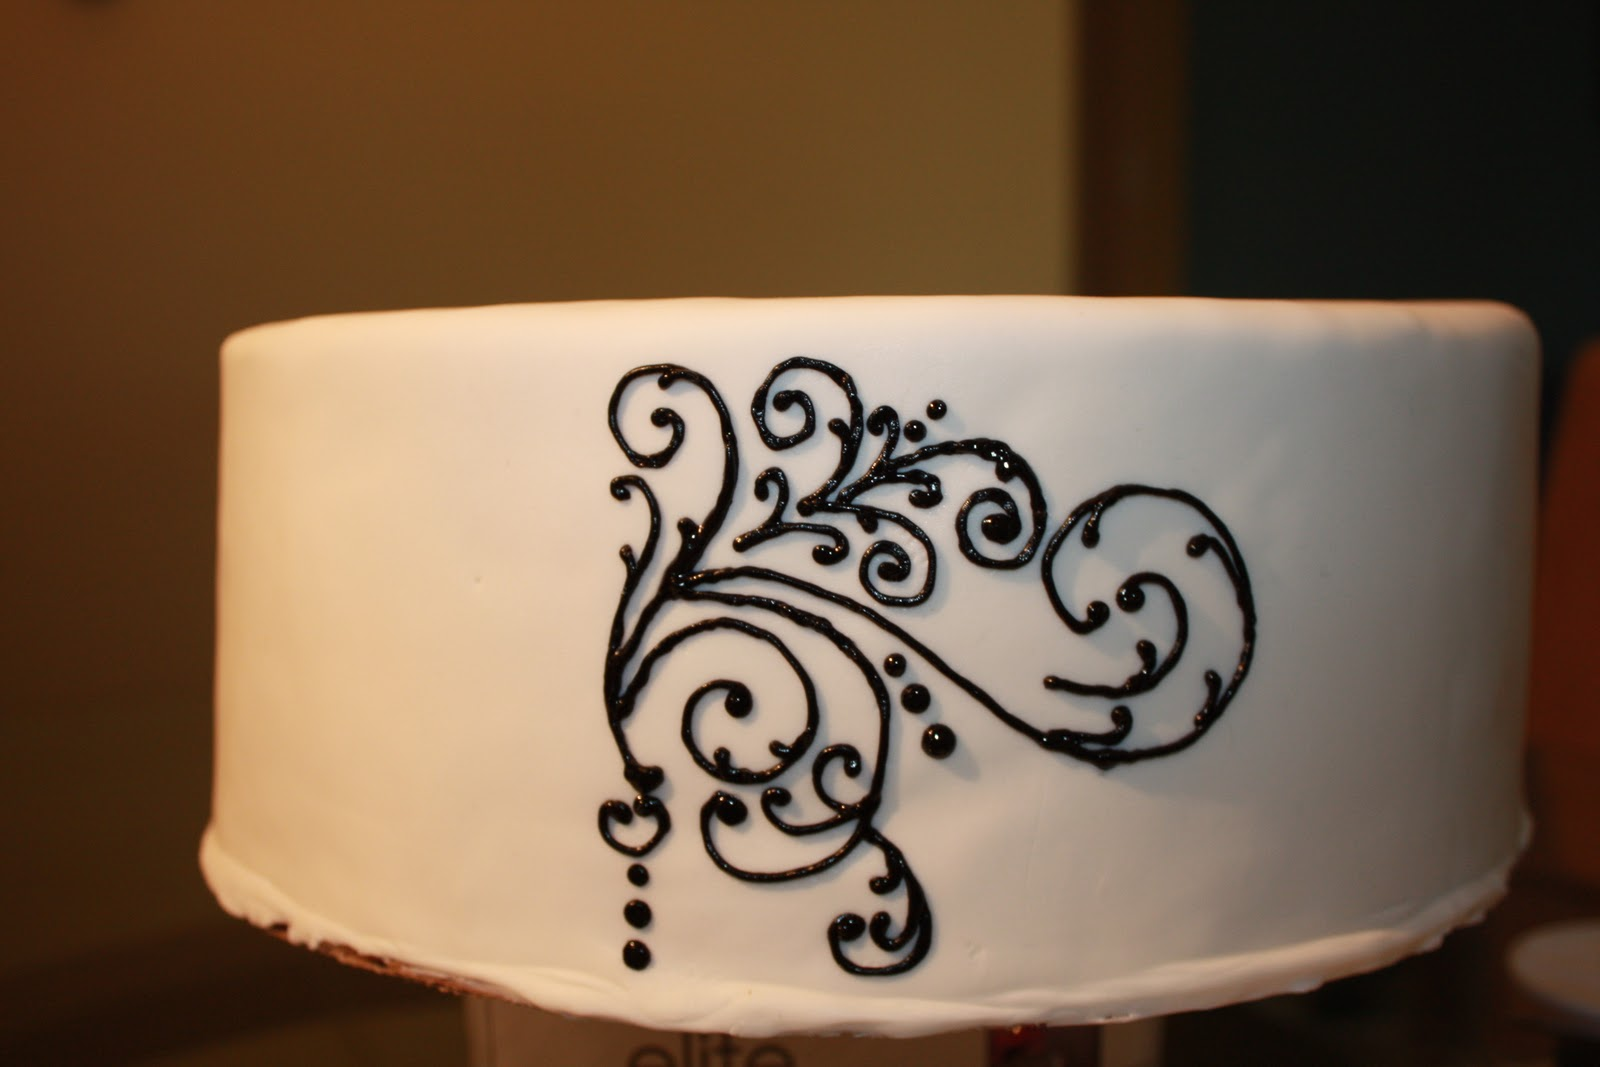 Cake Piping Design Templates : Sweet Eats Cakes: Pin Prick Method for Piping Scroll Work ...